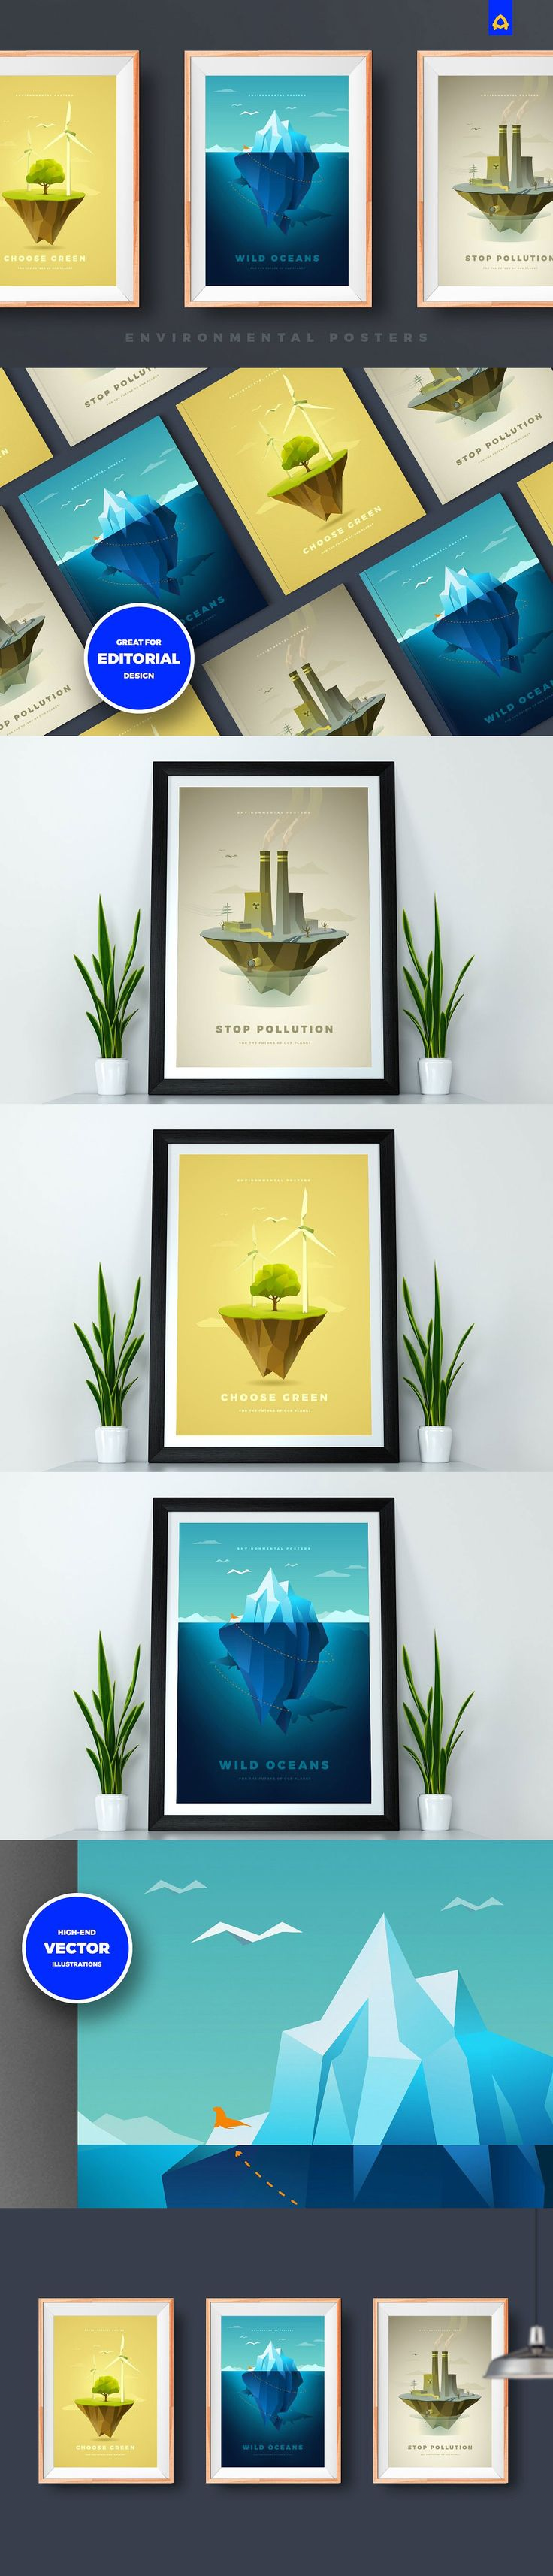 #Freebies : Set of 3 environmental #posters with well-crafted low-poly #vector #illustrations could be used as #wallpapers, #citylights or for editorial design. With these illustrations you can cover environmental topics such as: global warming, green energy, #iceberg melting, toxic waste, air or water pollution and much more. ( #polygon #nature #printable )